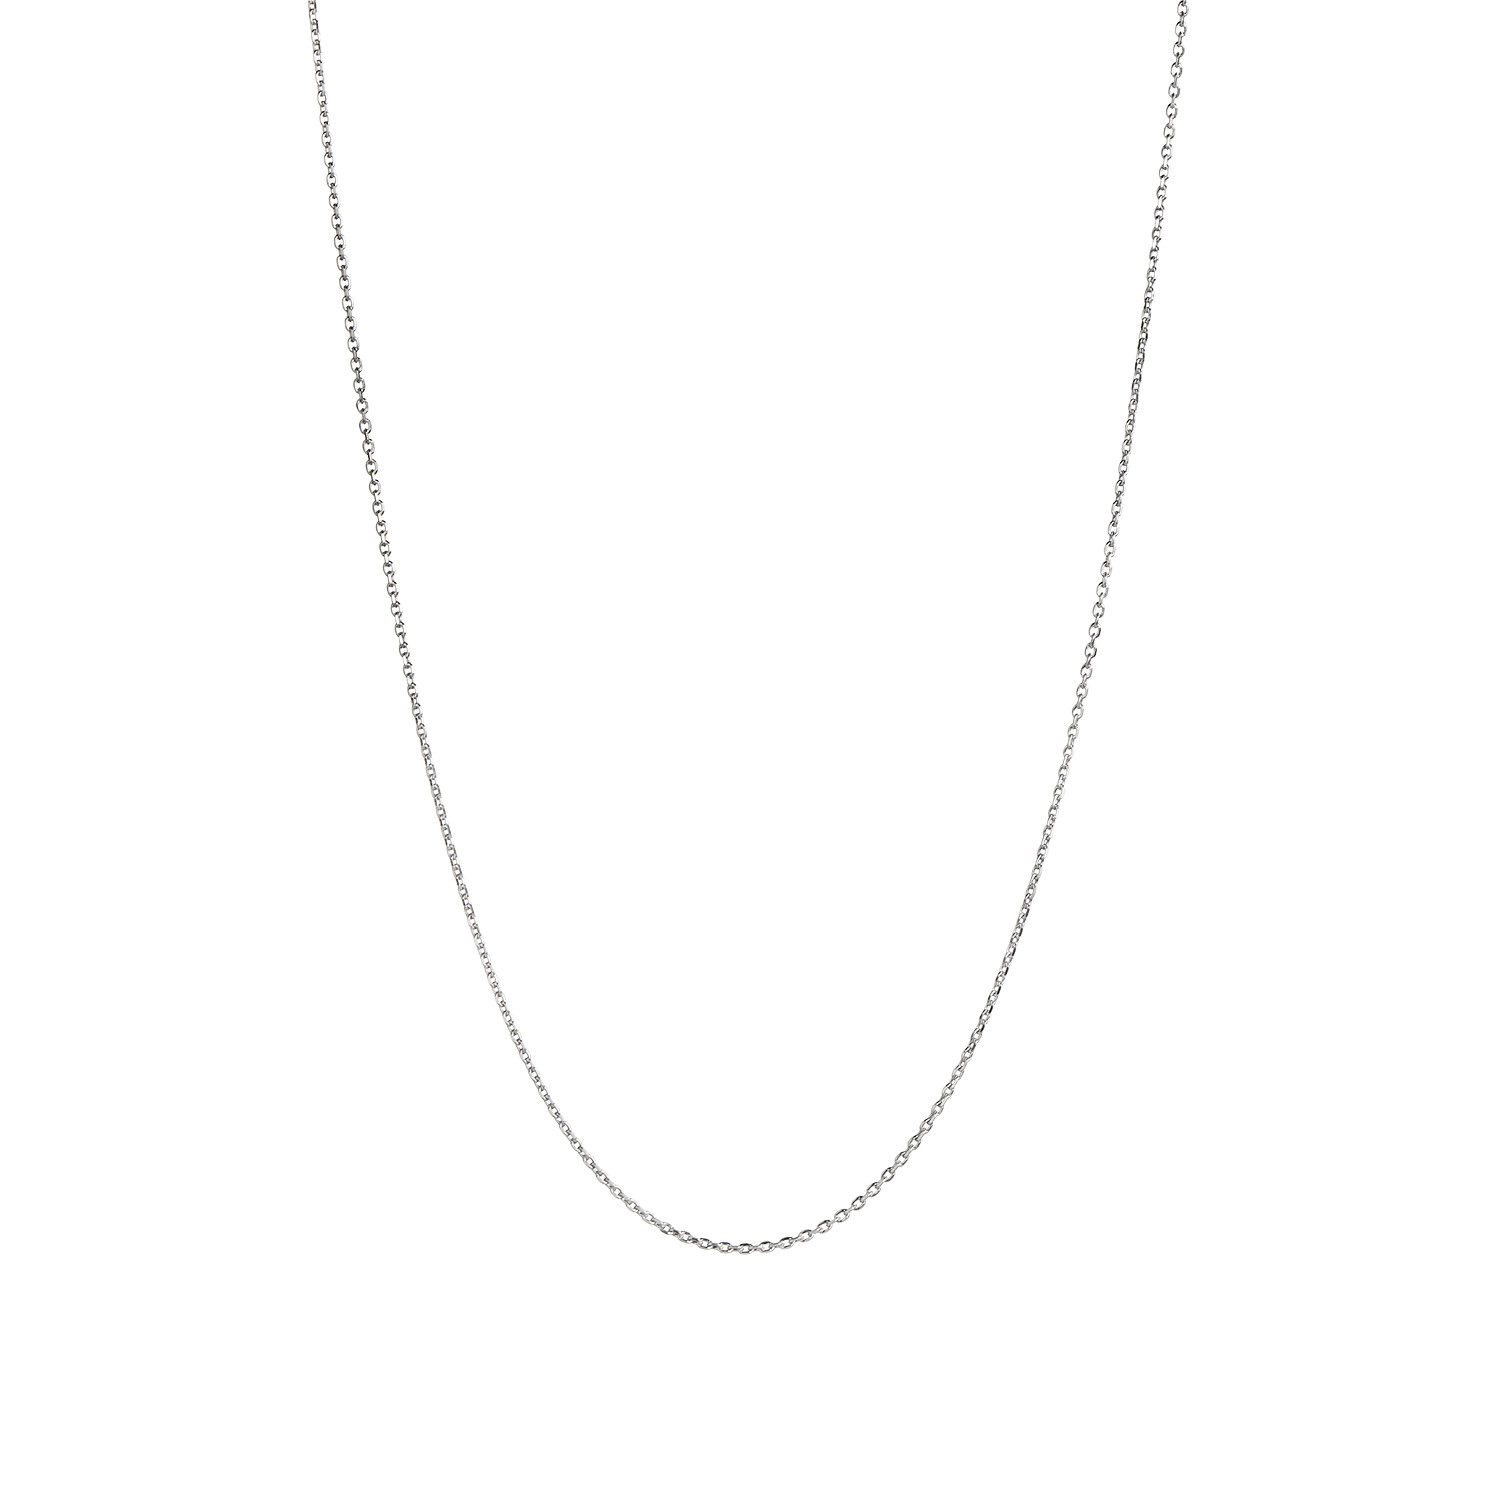 curb webstore plain necklaces number chains him for l silver product chain samuel jewellery sterling h recipient category